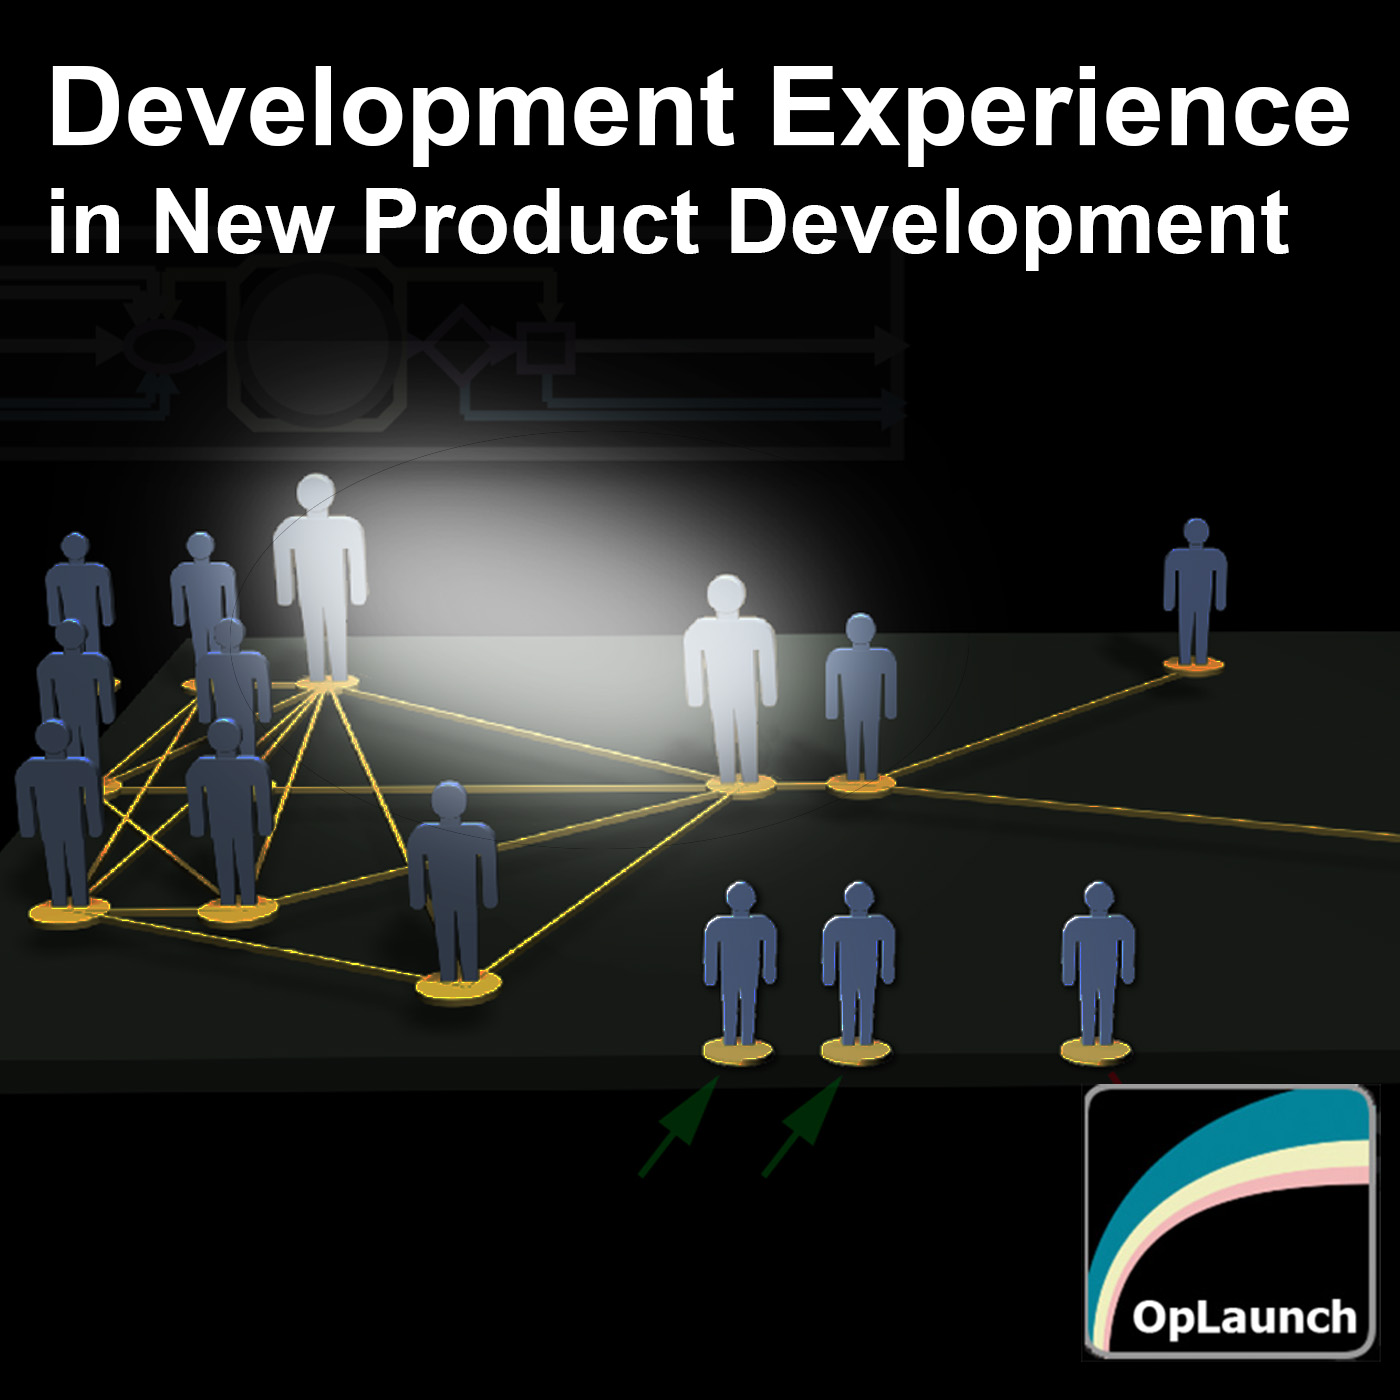 Development Experience - OpLaunch » dx